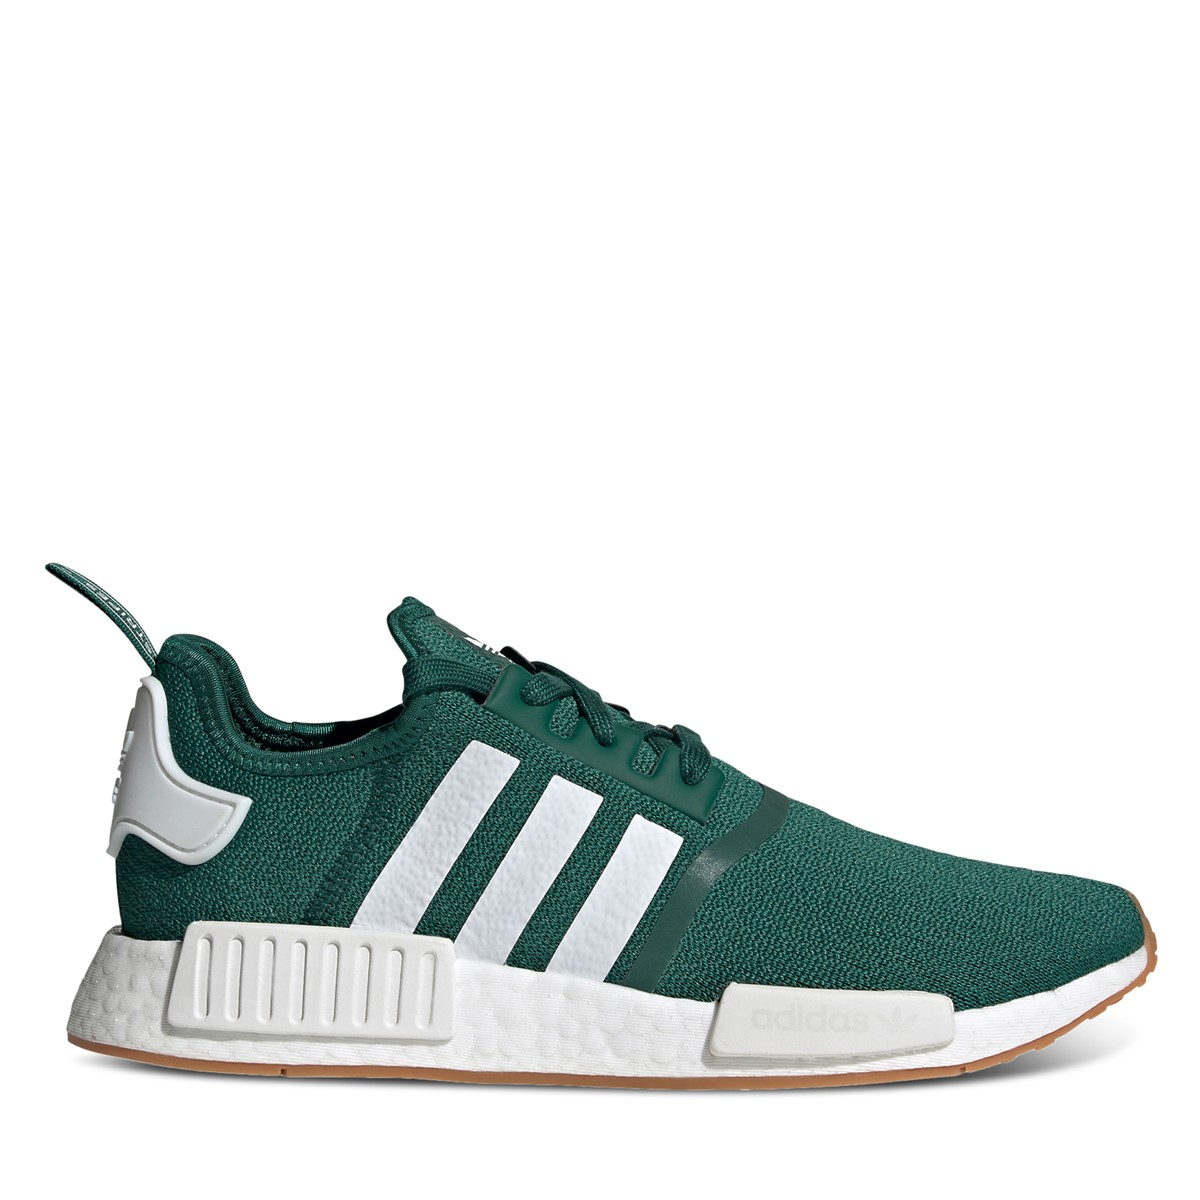 Men's NMD_R1 Sneakers in Green/White